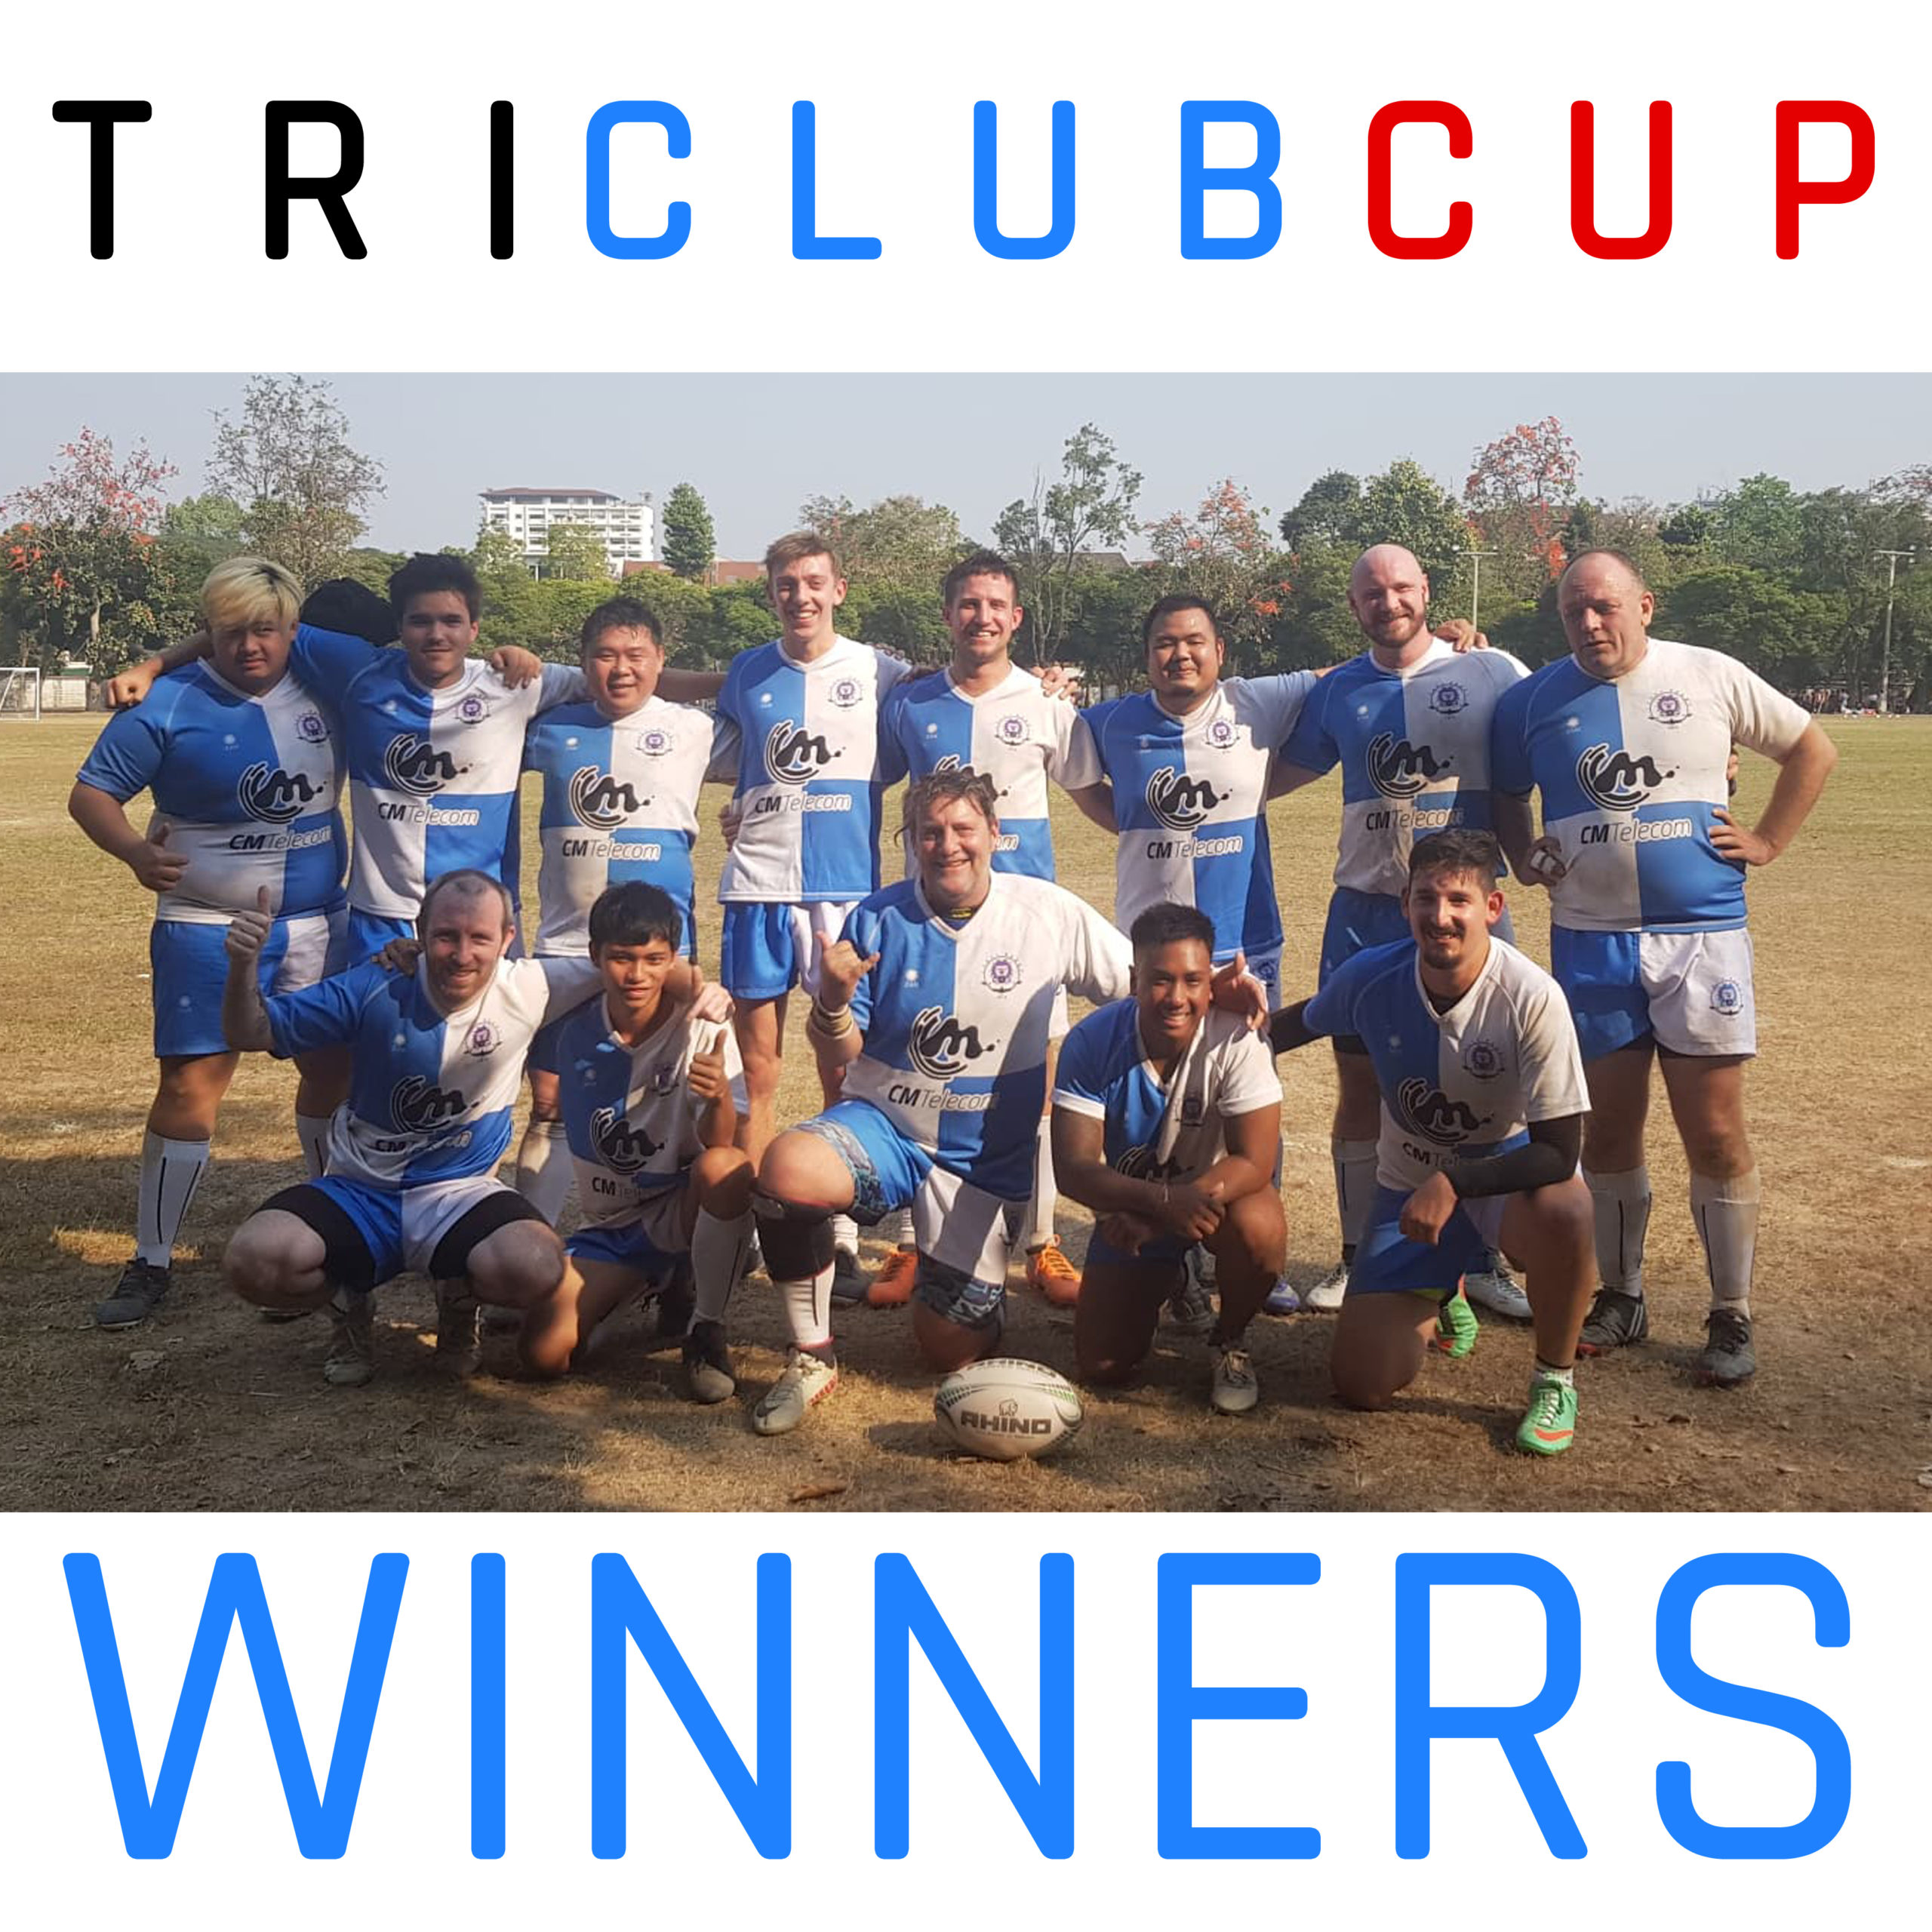 2019/2020 TRI CLUB CUP WINNERS